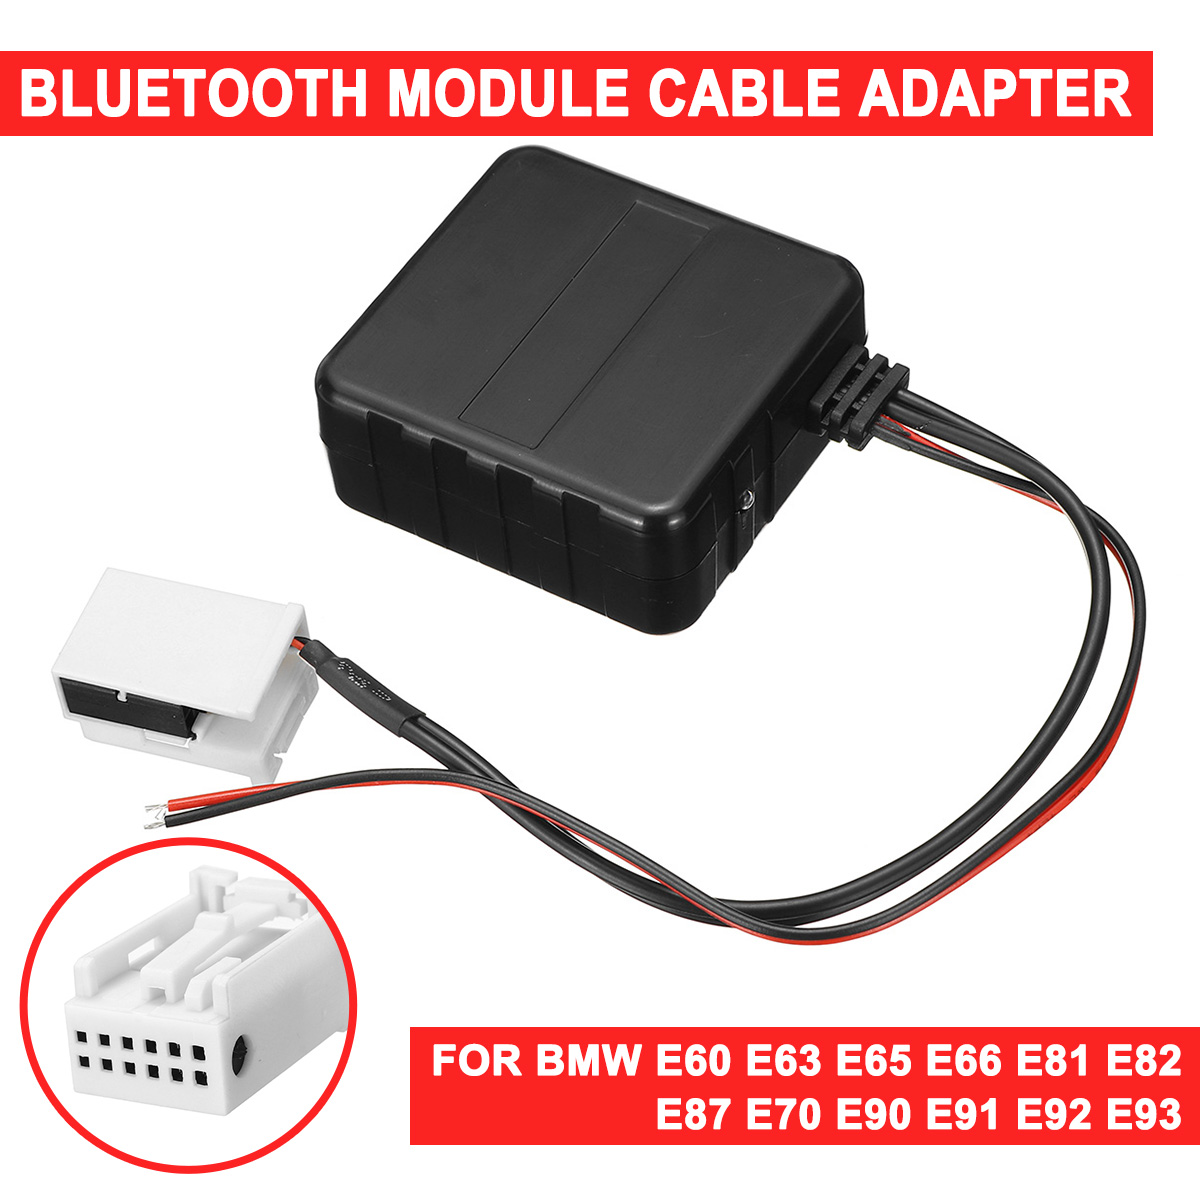 For BMW E60-E66 E70 E82 E87 E90 E92 <font><b>12V</b></font> <font><b>AUX</b></font> Cable <font><b>Adapter</b></font> Car <font><b>bluetooth</b></font> 5.0 Module Audio Radio Stereo <font><b>AUX</b></font>-IN Plastic image